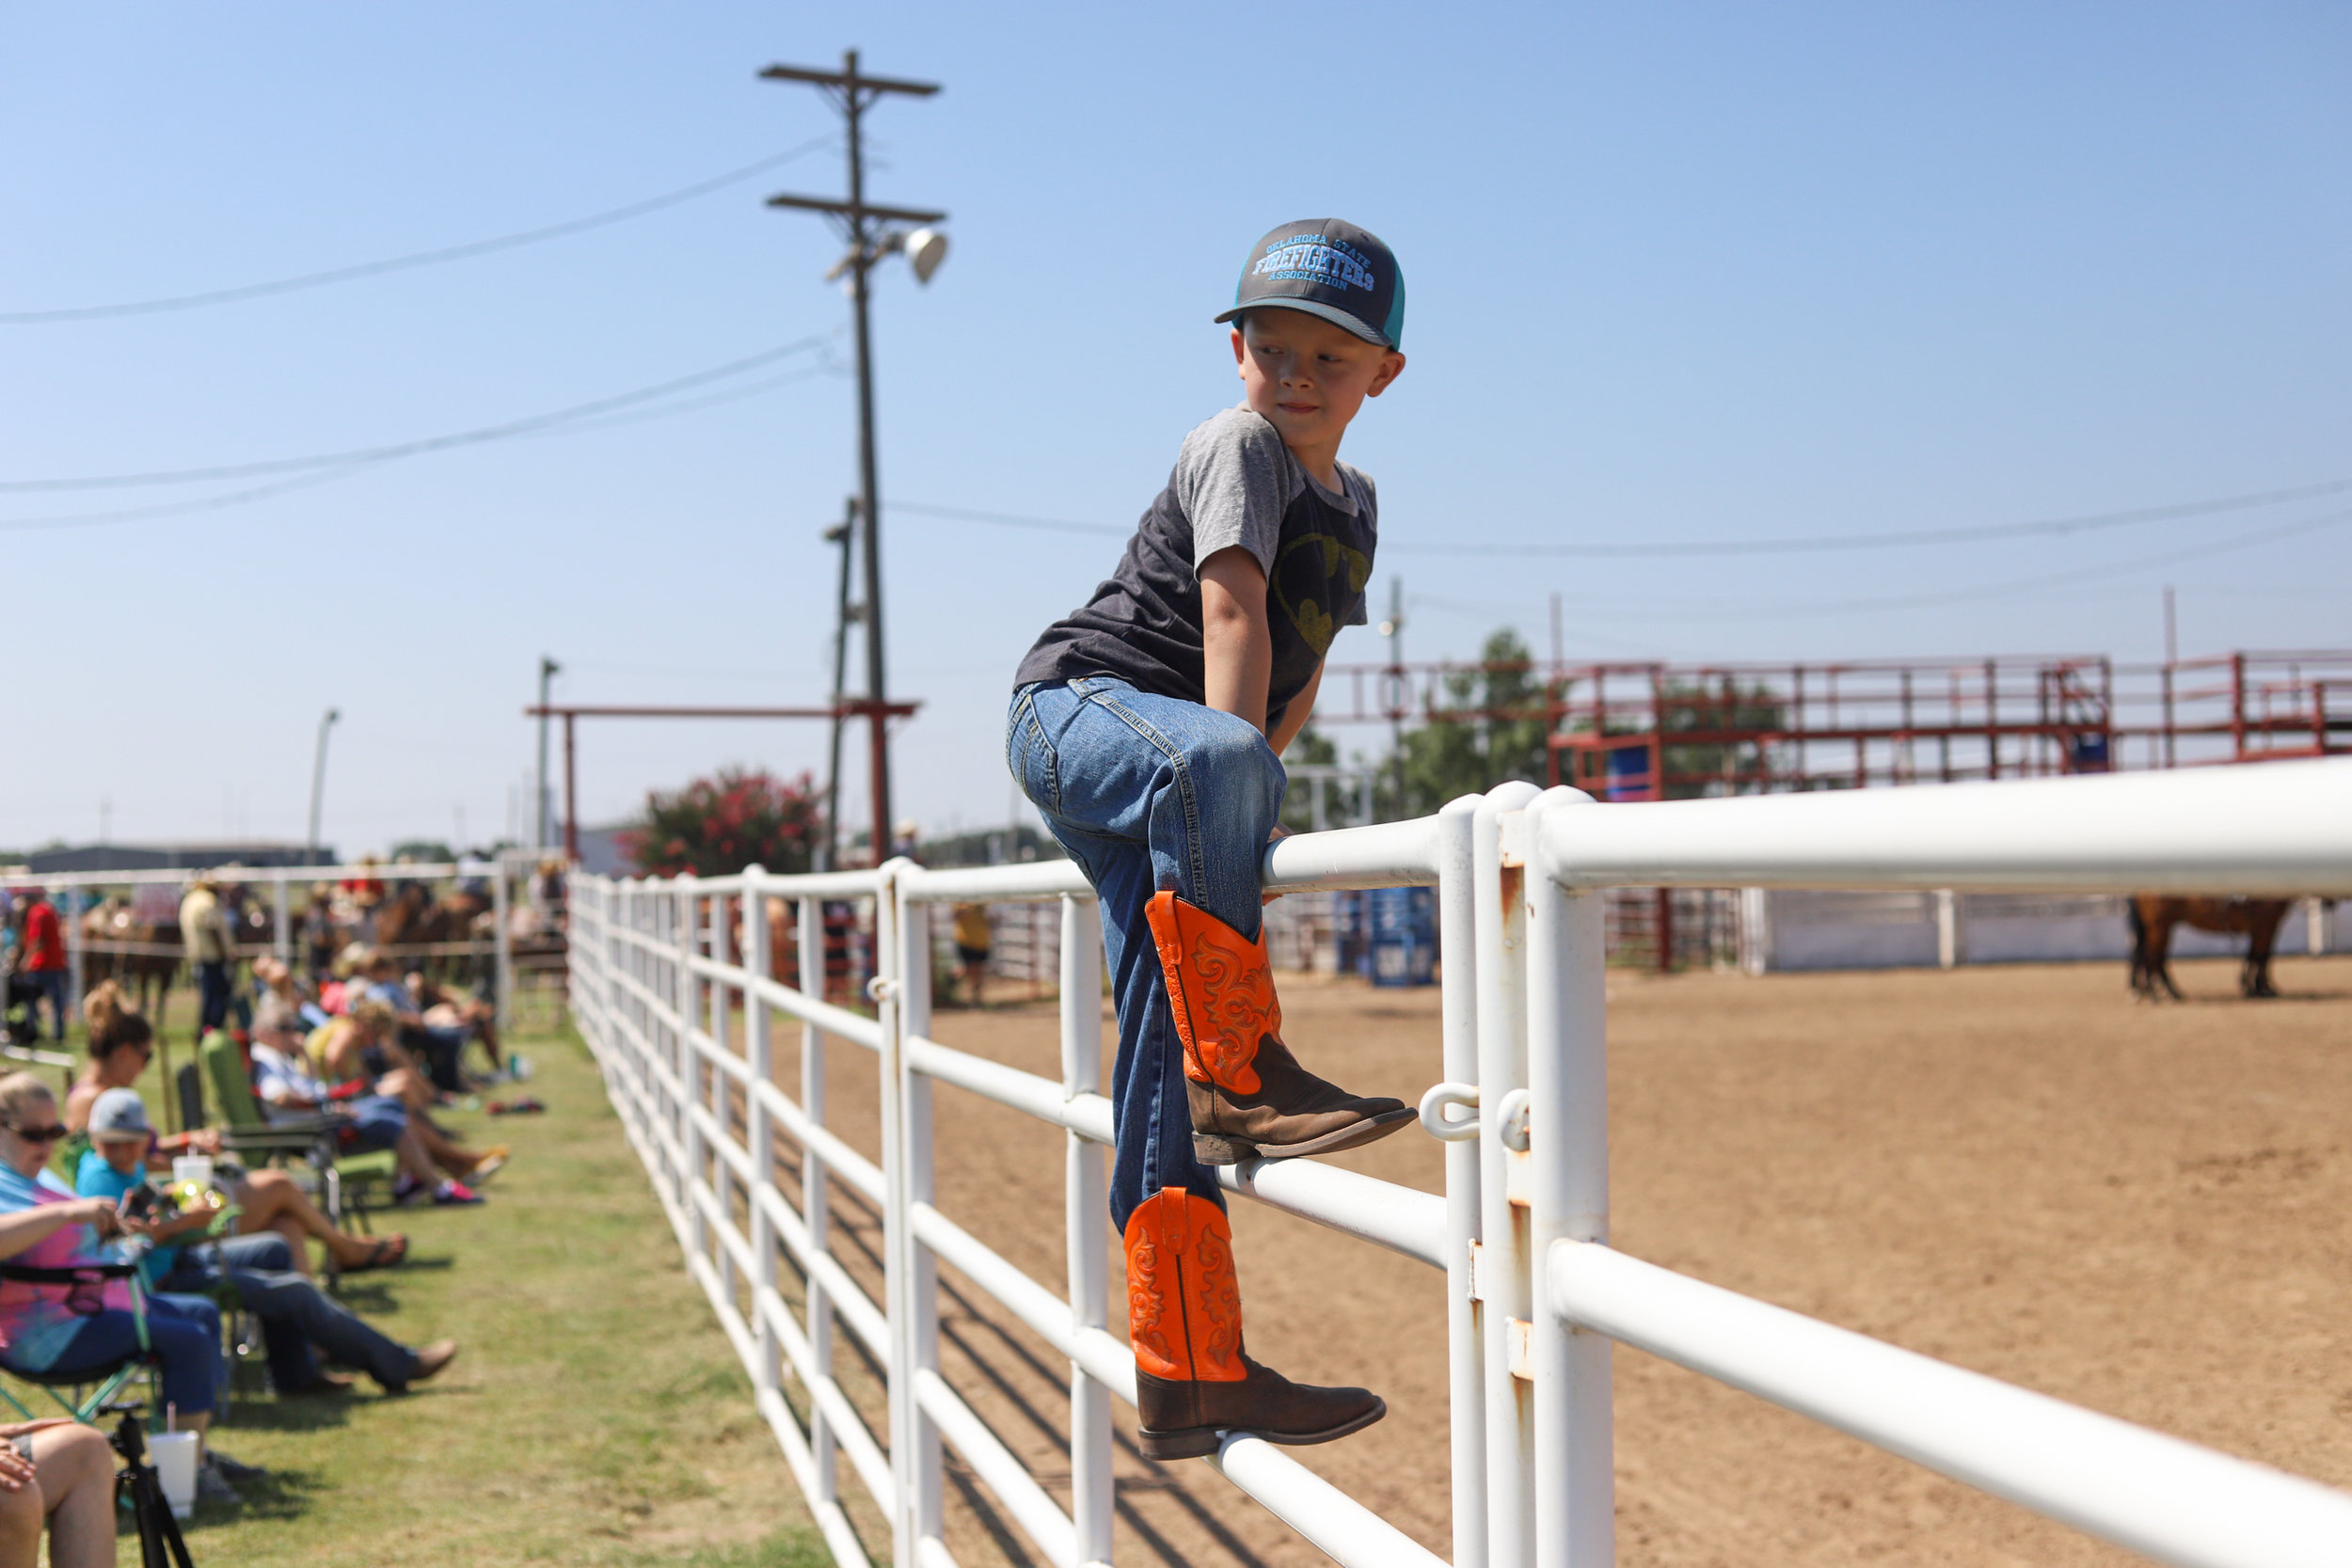 A young boy climbs on a fence to watch a cattle roping event during the youth ranch rodeo at the 101 Arena in Ponca City, Oklahoma.